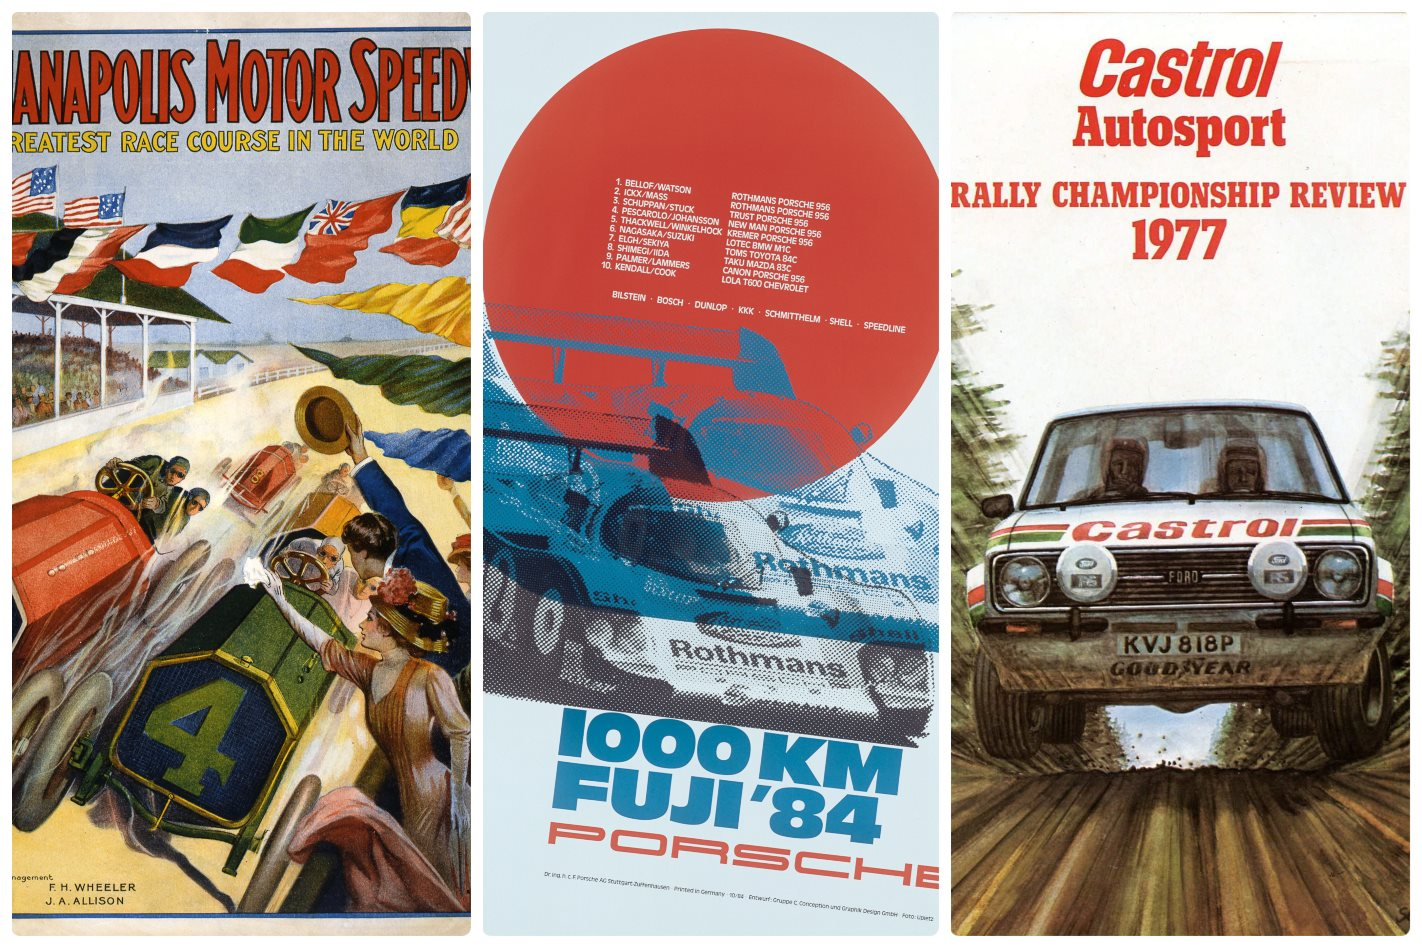 Gallery: The art of speed and racing posters